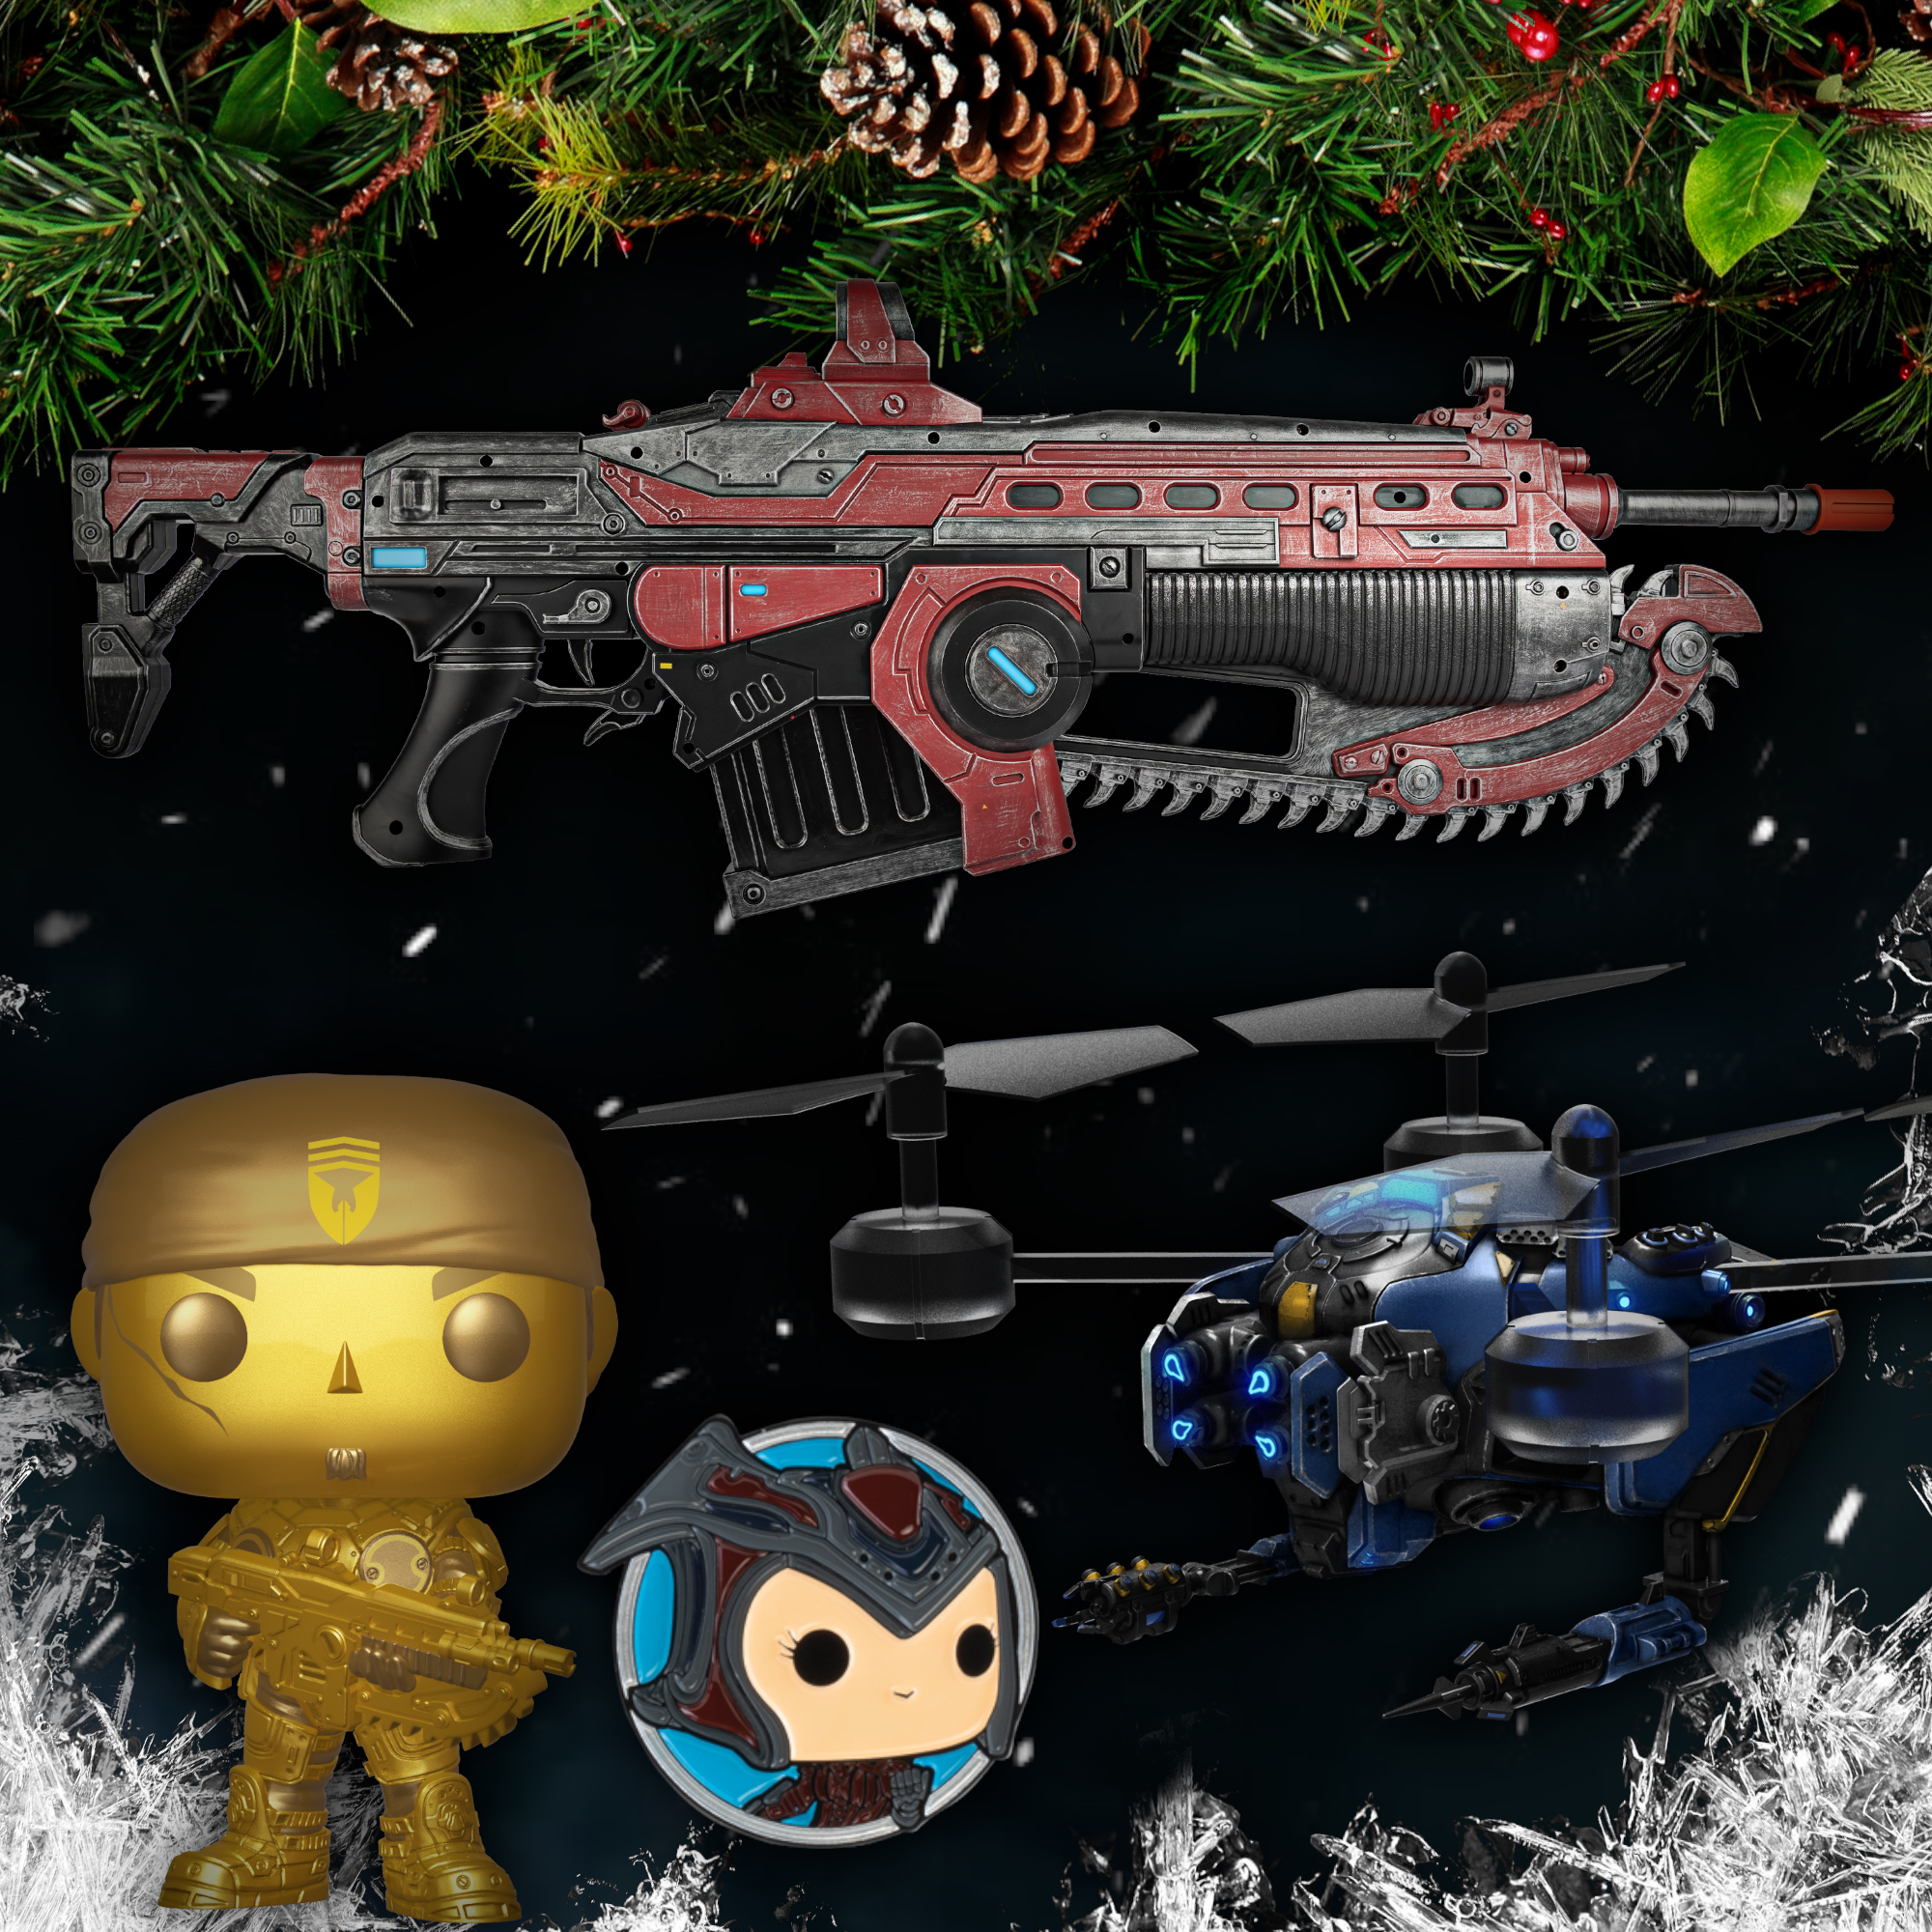 Gears 5 toys and collectibles articles for sale